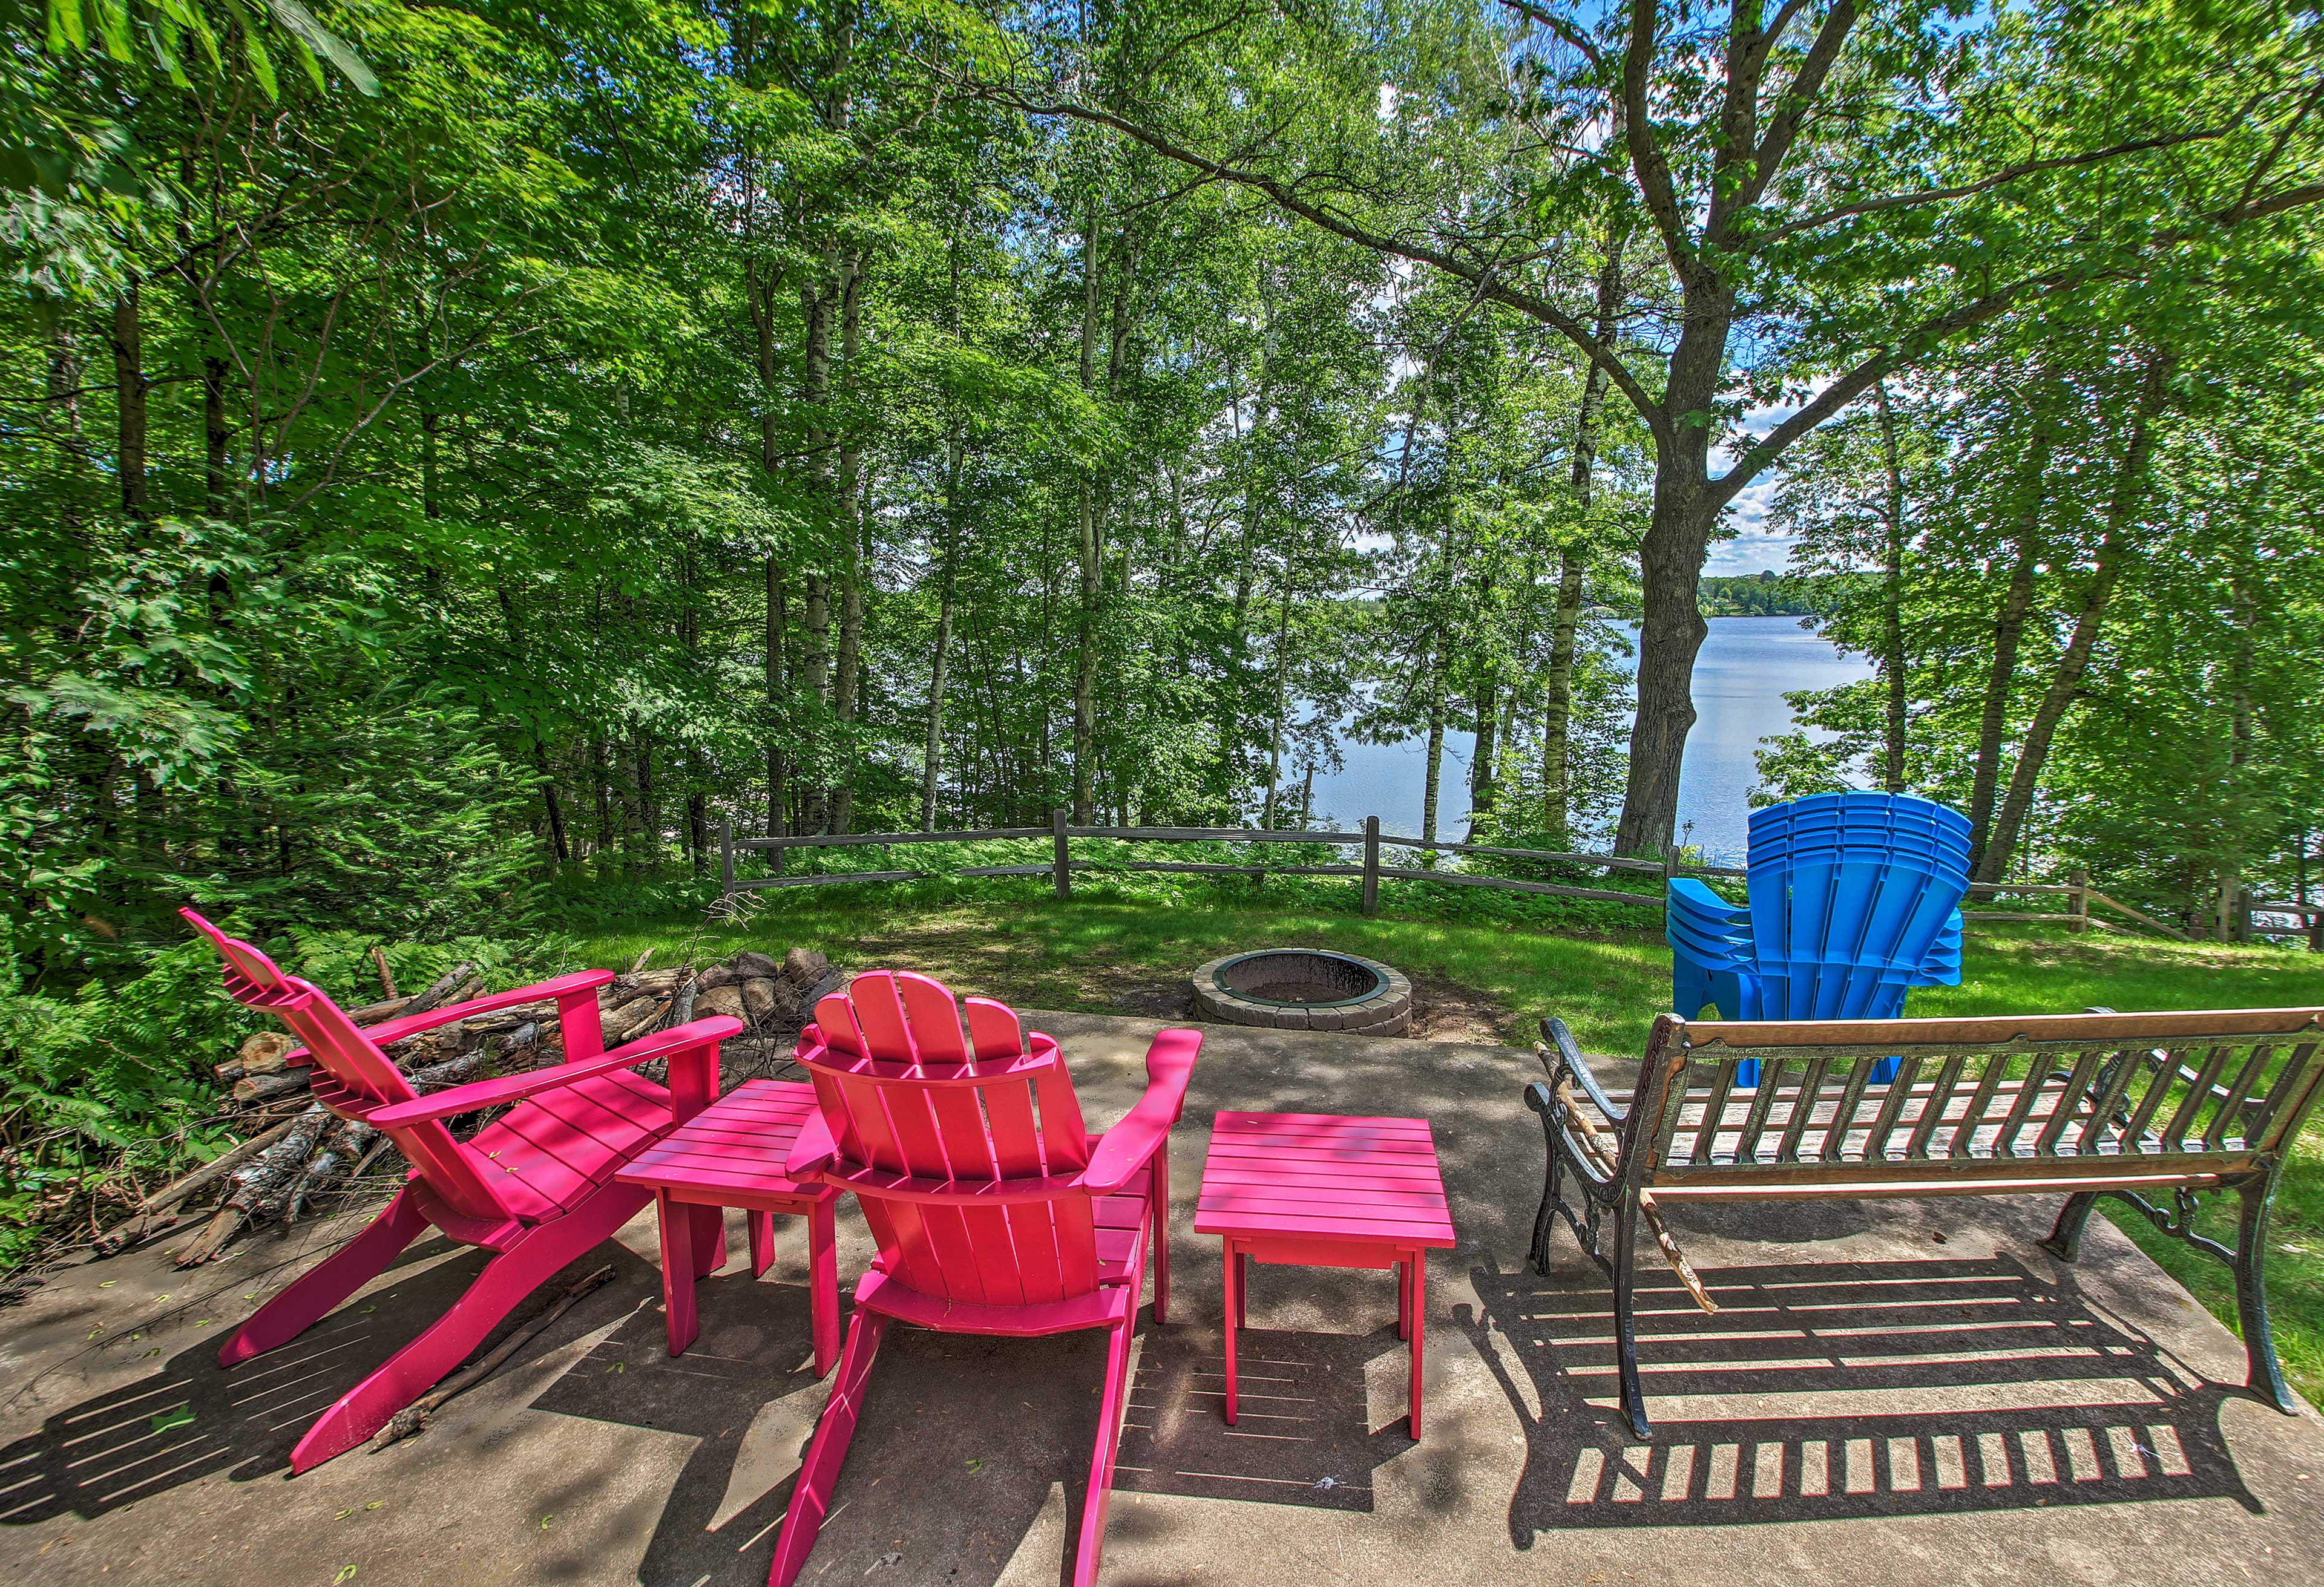 Crack open a cold one around the fire pit and take in stunning lake views!